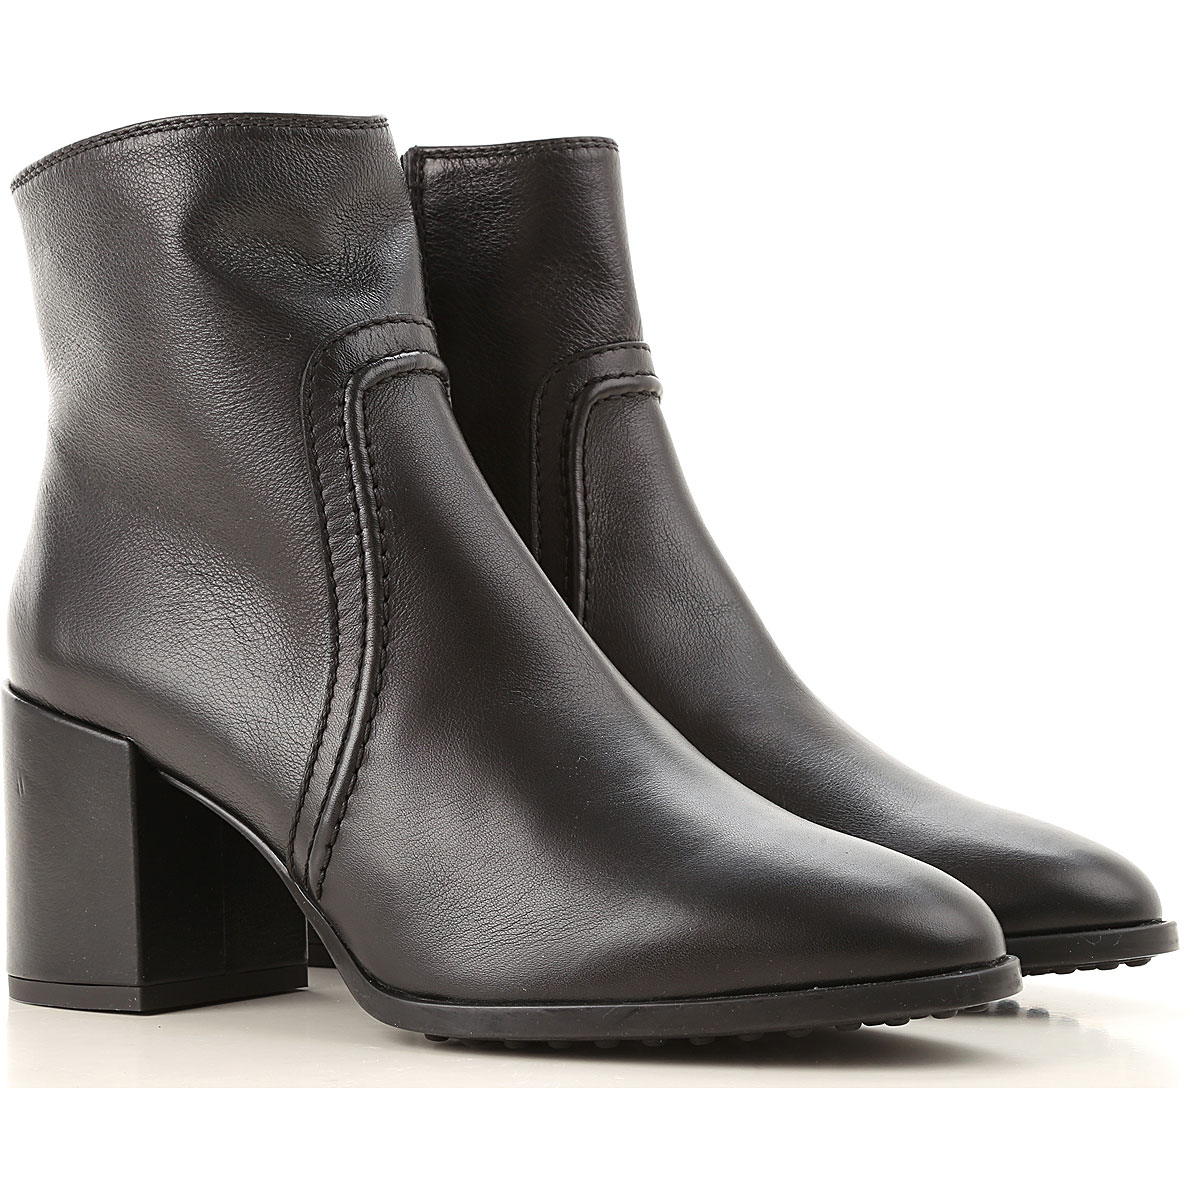 Tods Boots for Women, Booties On Sale, Black, Leather, 2019, 10 11 5 6 7 8 8.5 9 9.5